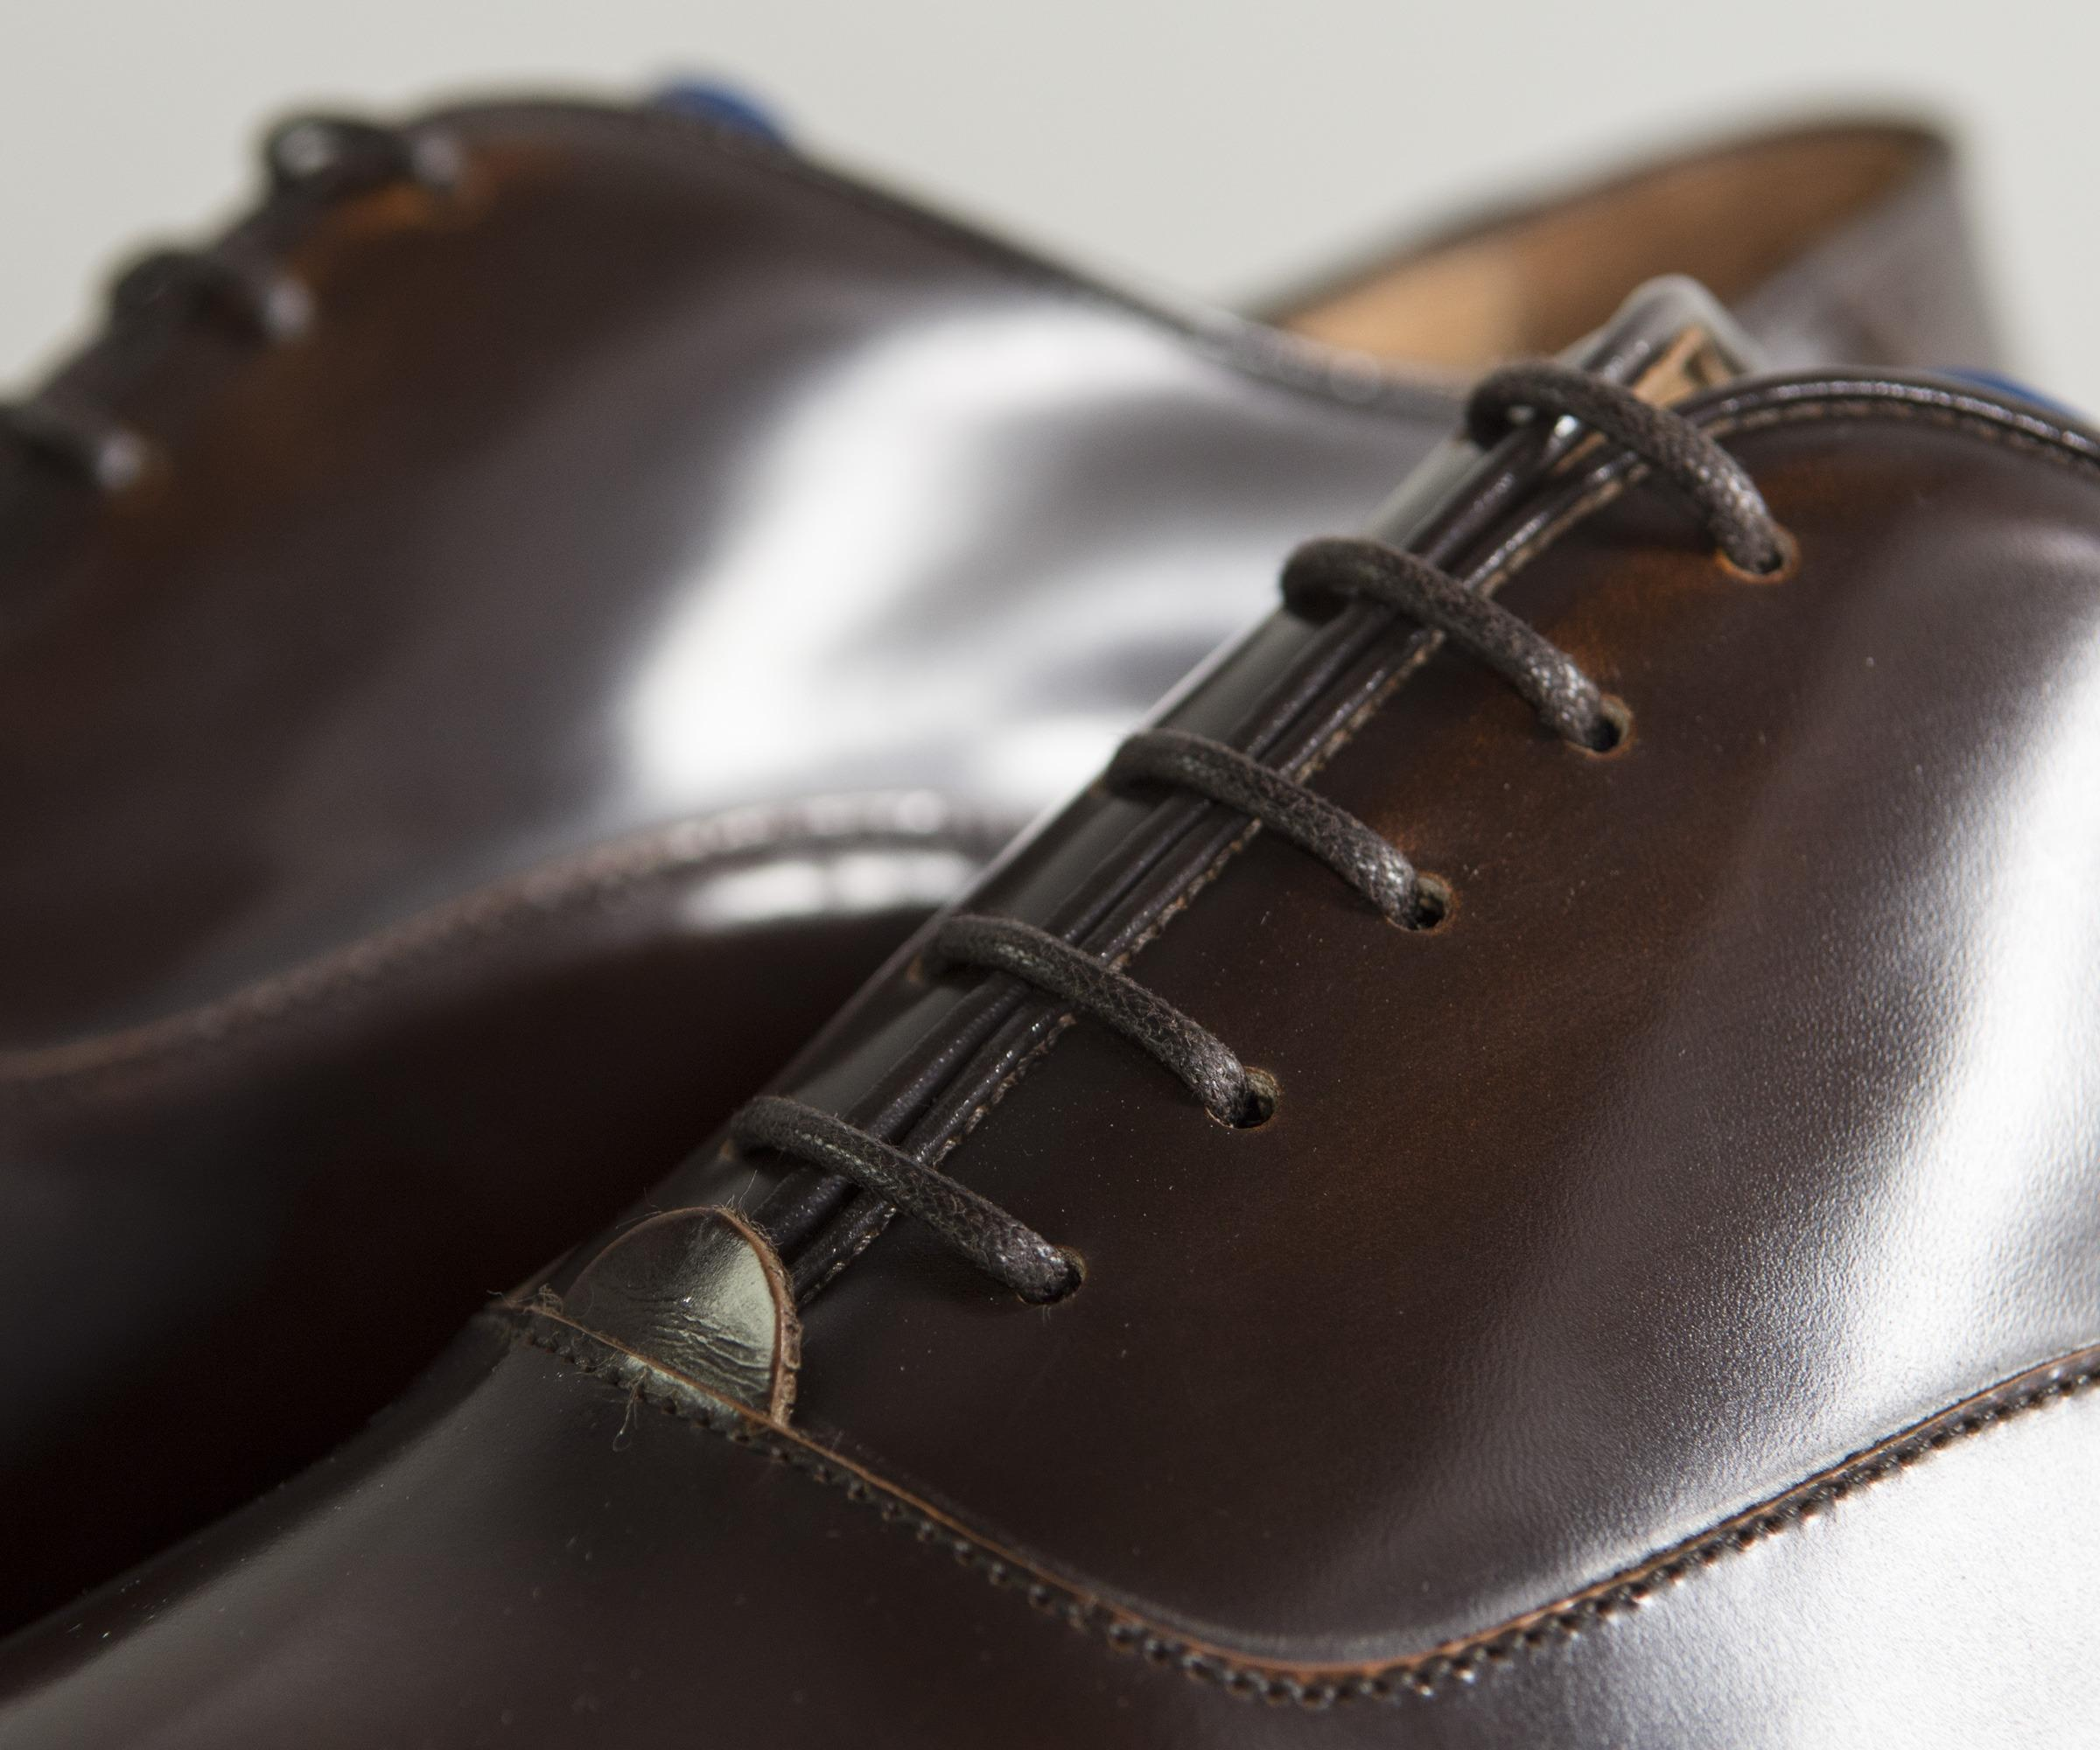 Pockets Leather Sabatini Punched Hole Detail Shoe Brown for Men